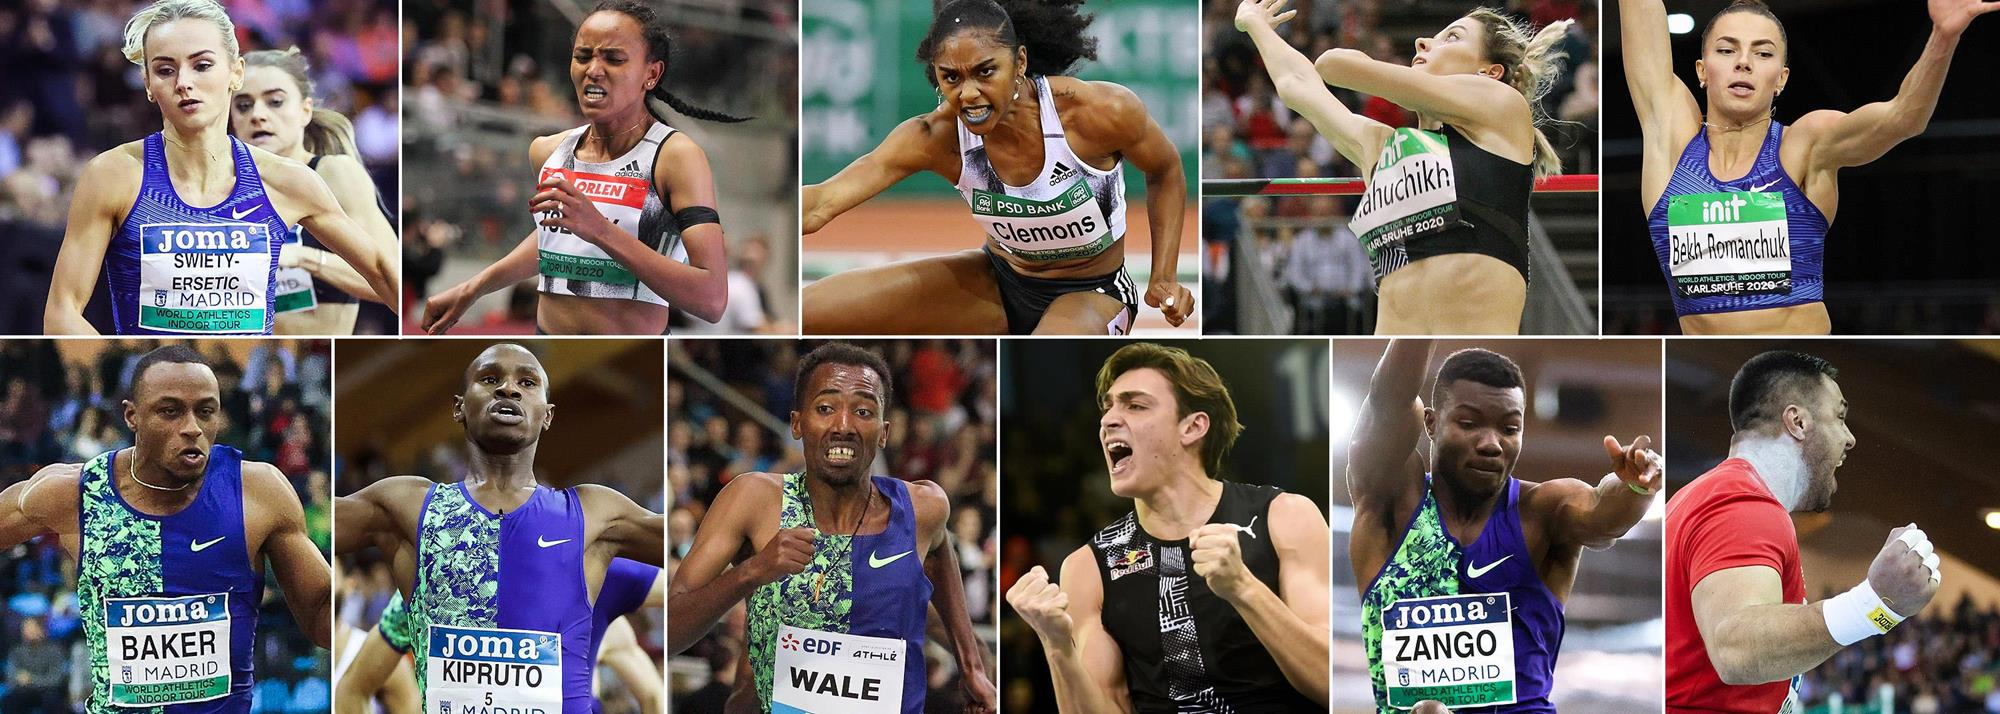 2020 World Athletics Indoor Tour winners secure wildcards for Nanjing